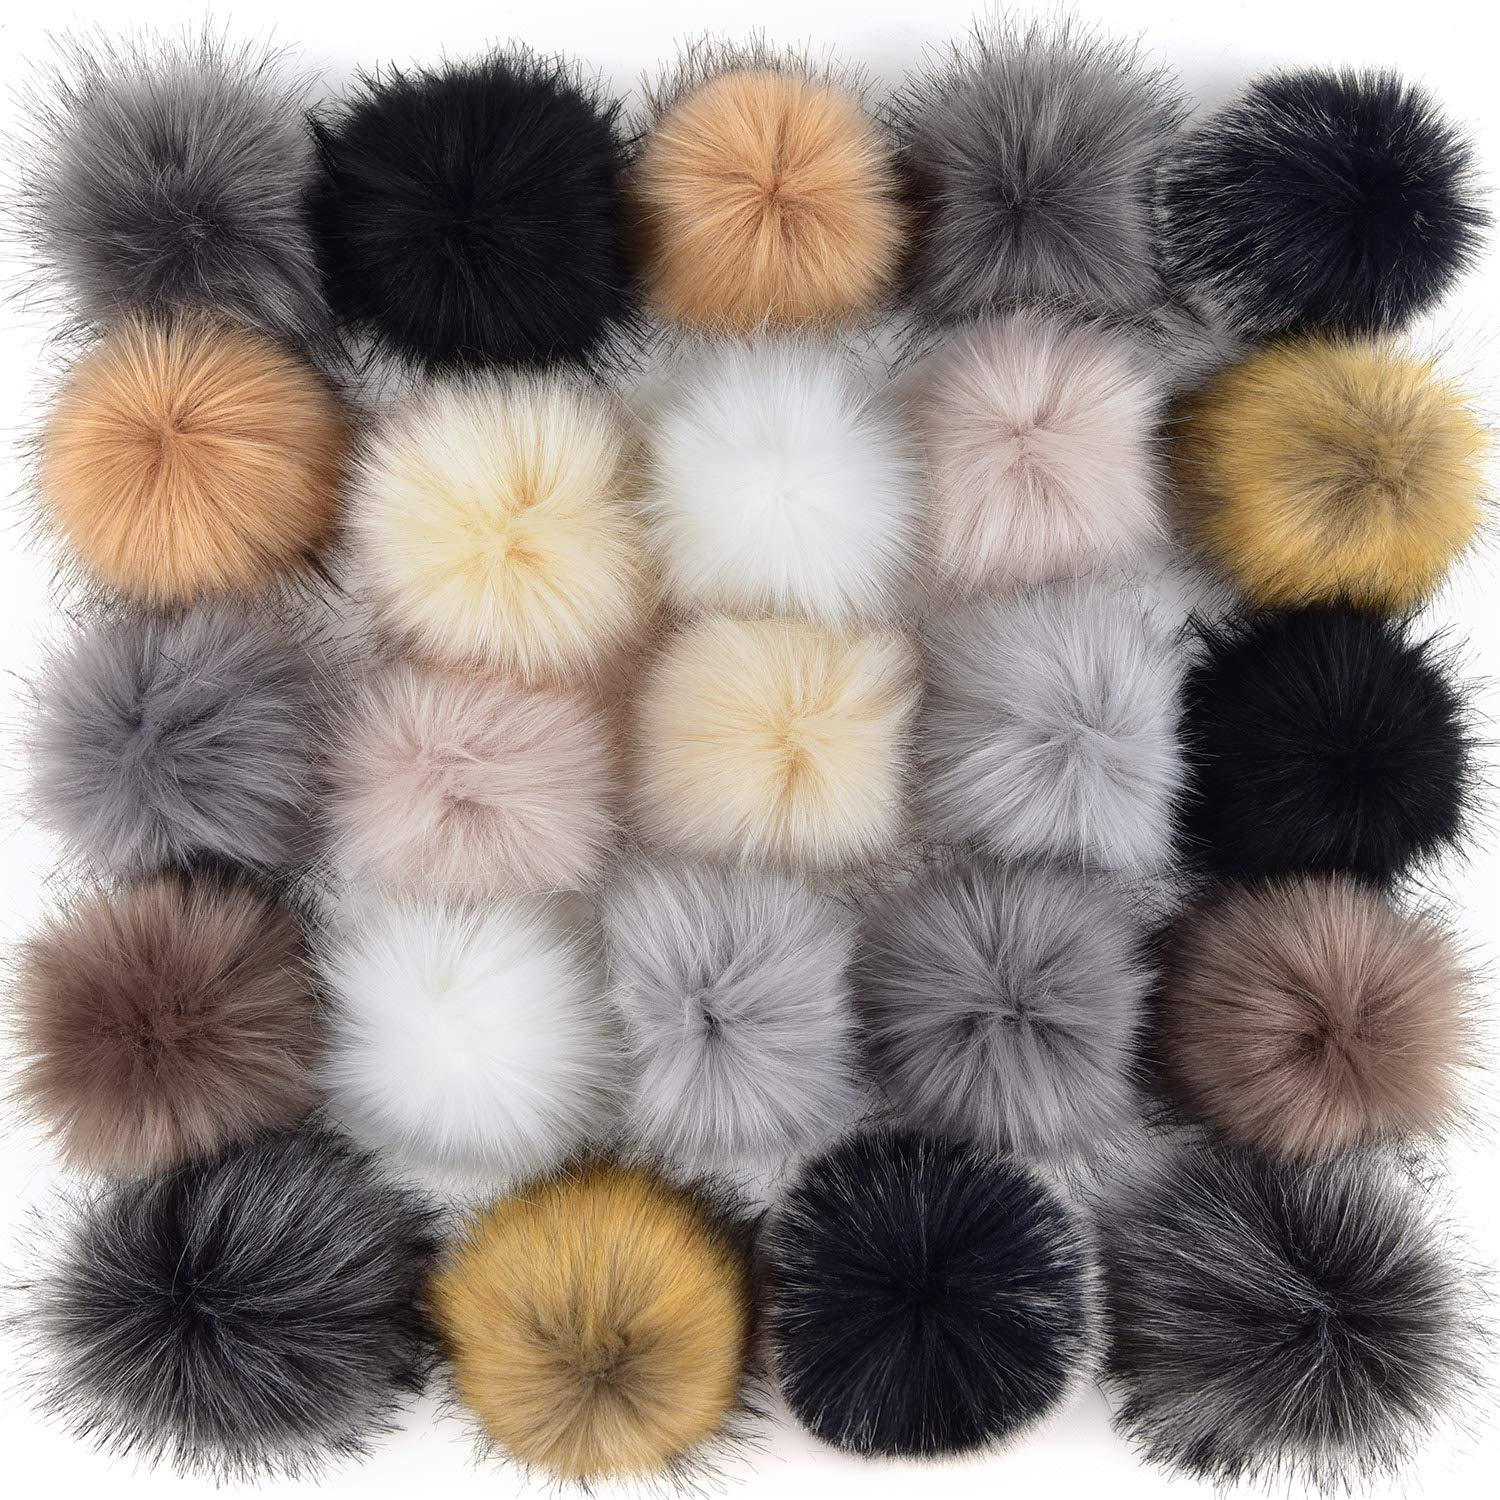 Color Set 3 30 Pieces Faux Fur Pom Pom Balls DIY Faux Fox Fur Fluffy Pom Pom with Elastic Loop for Hats Keychains Scarves Gloves Bags Accessories